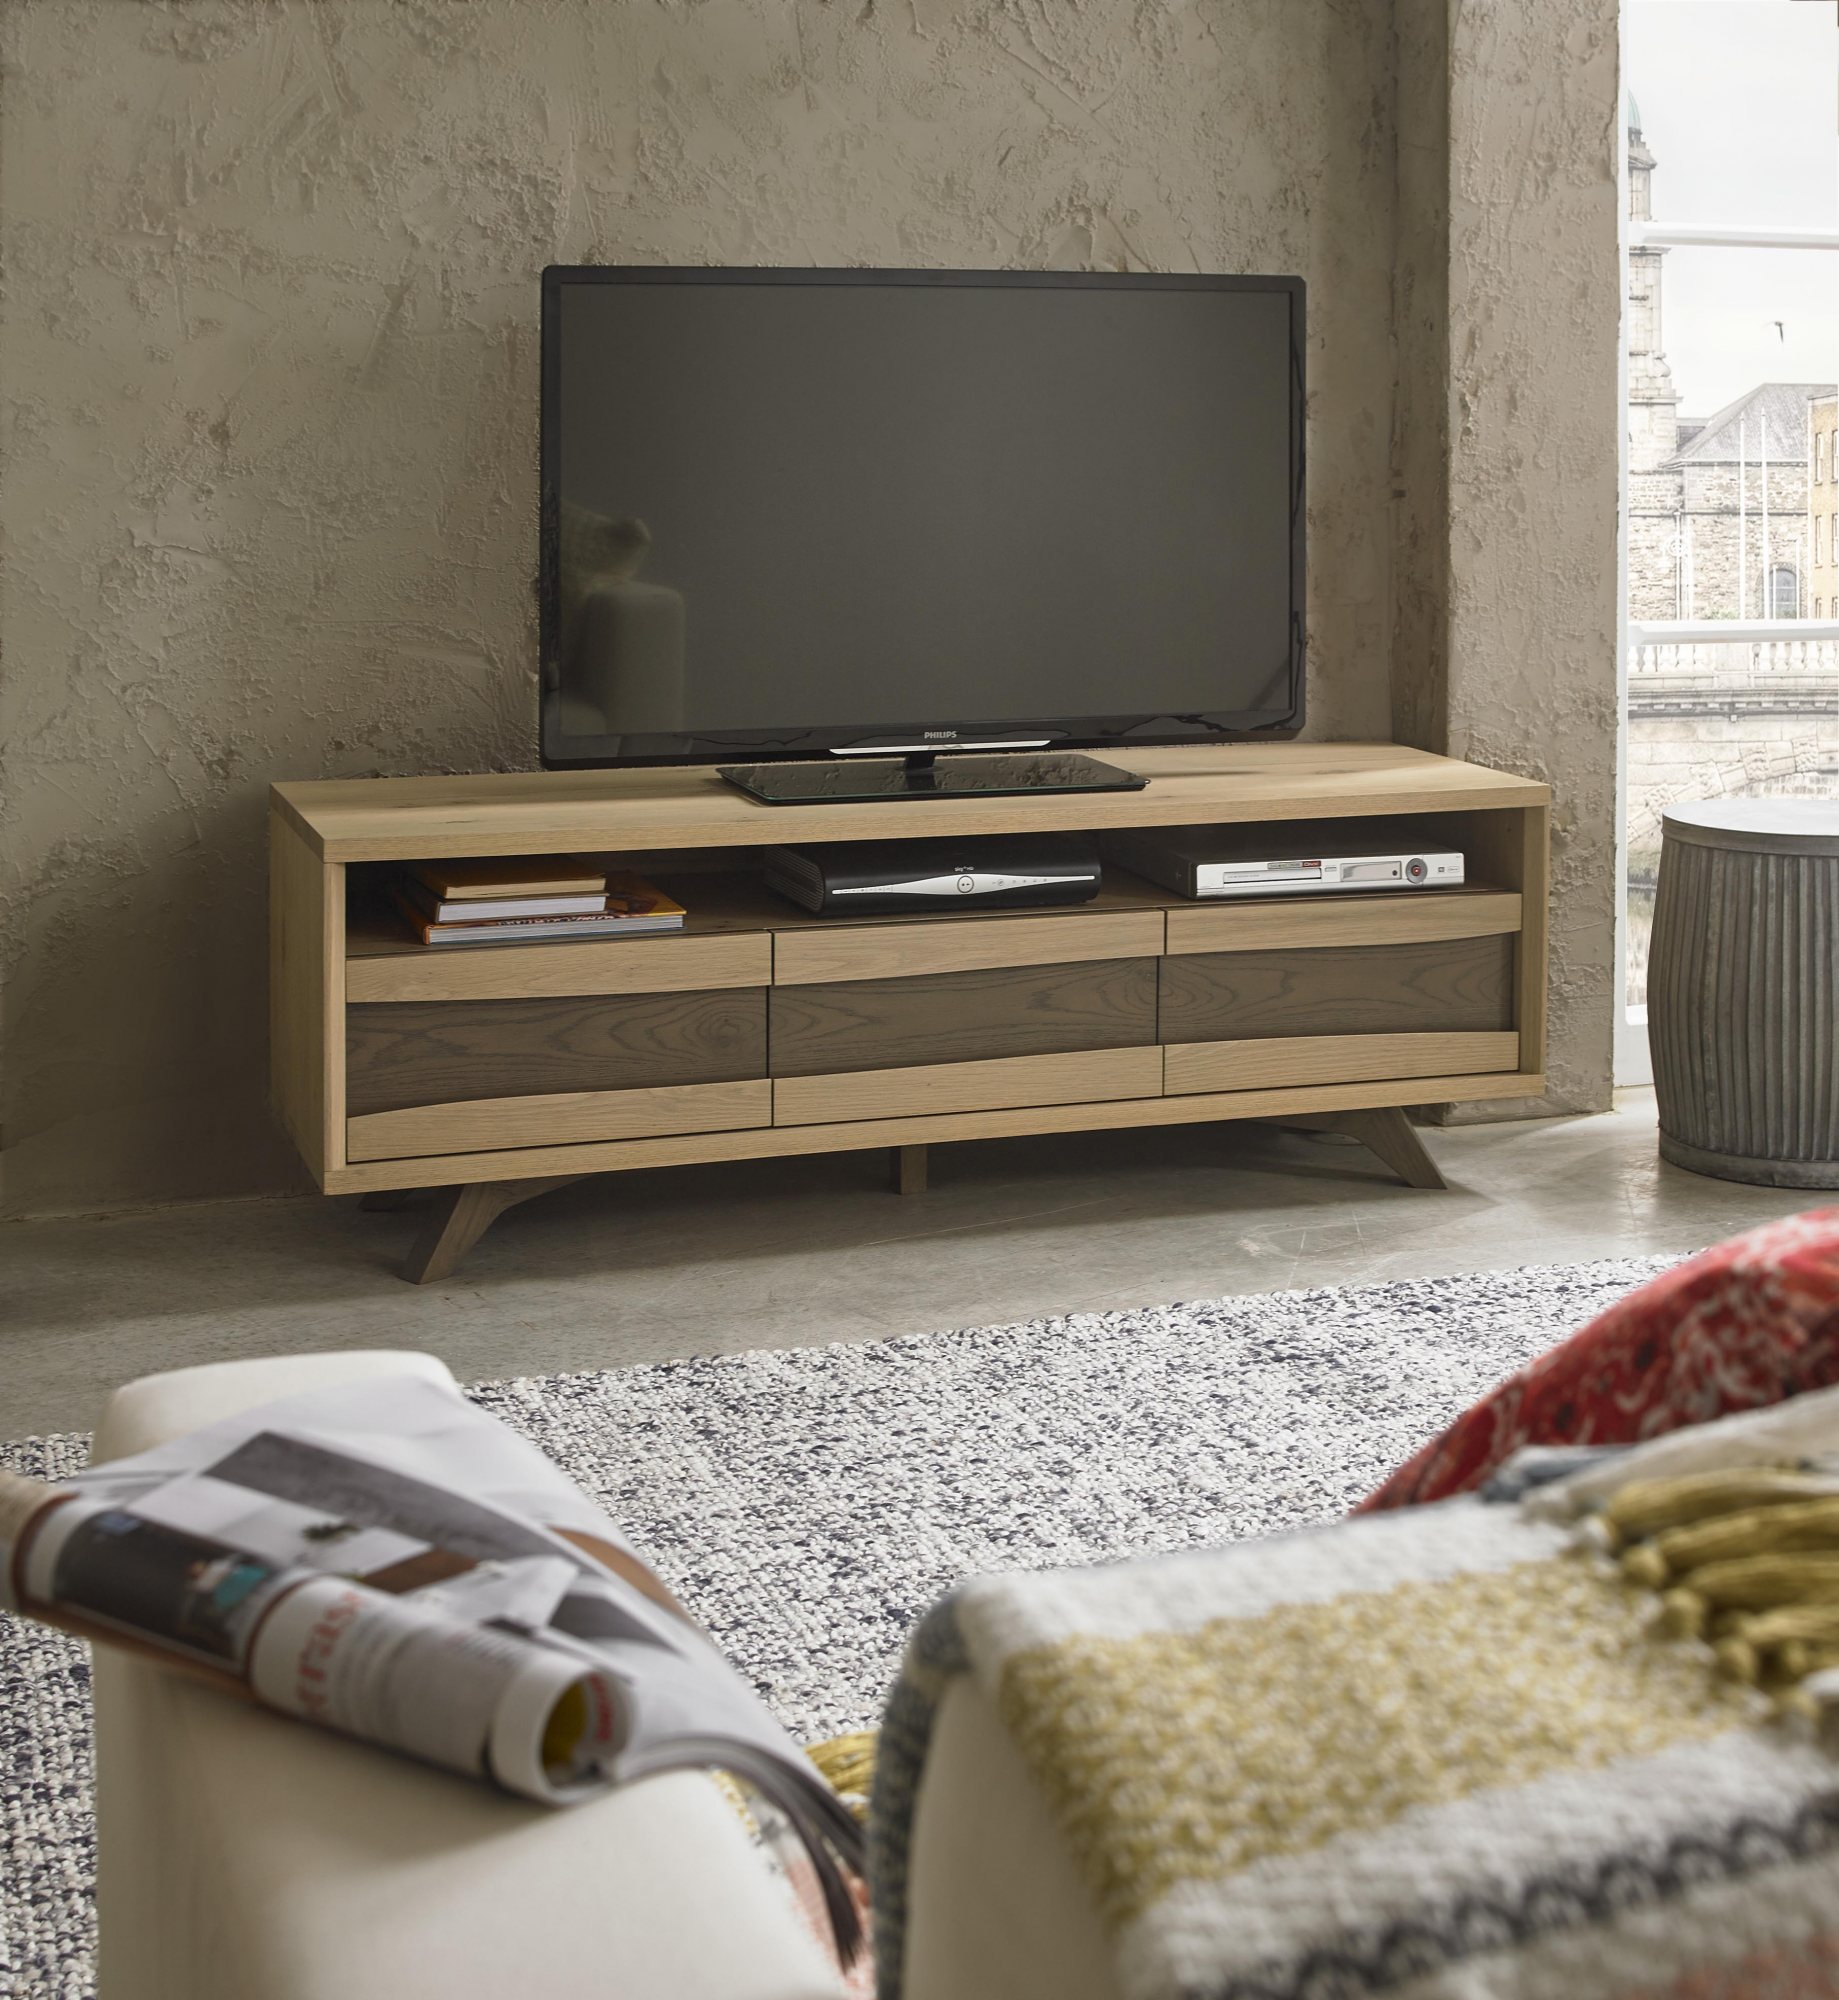 CARELL TV UNIT- L150cm x D45cm x H51cm